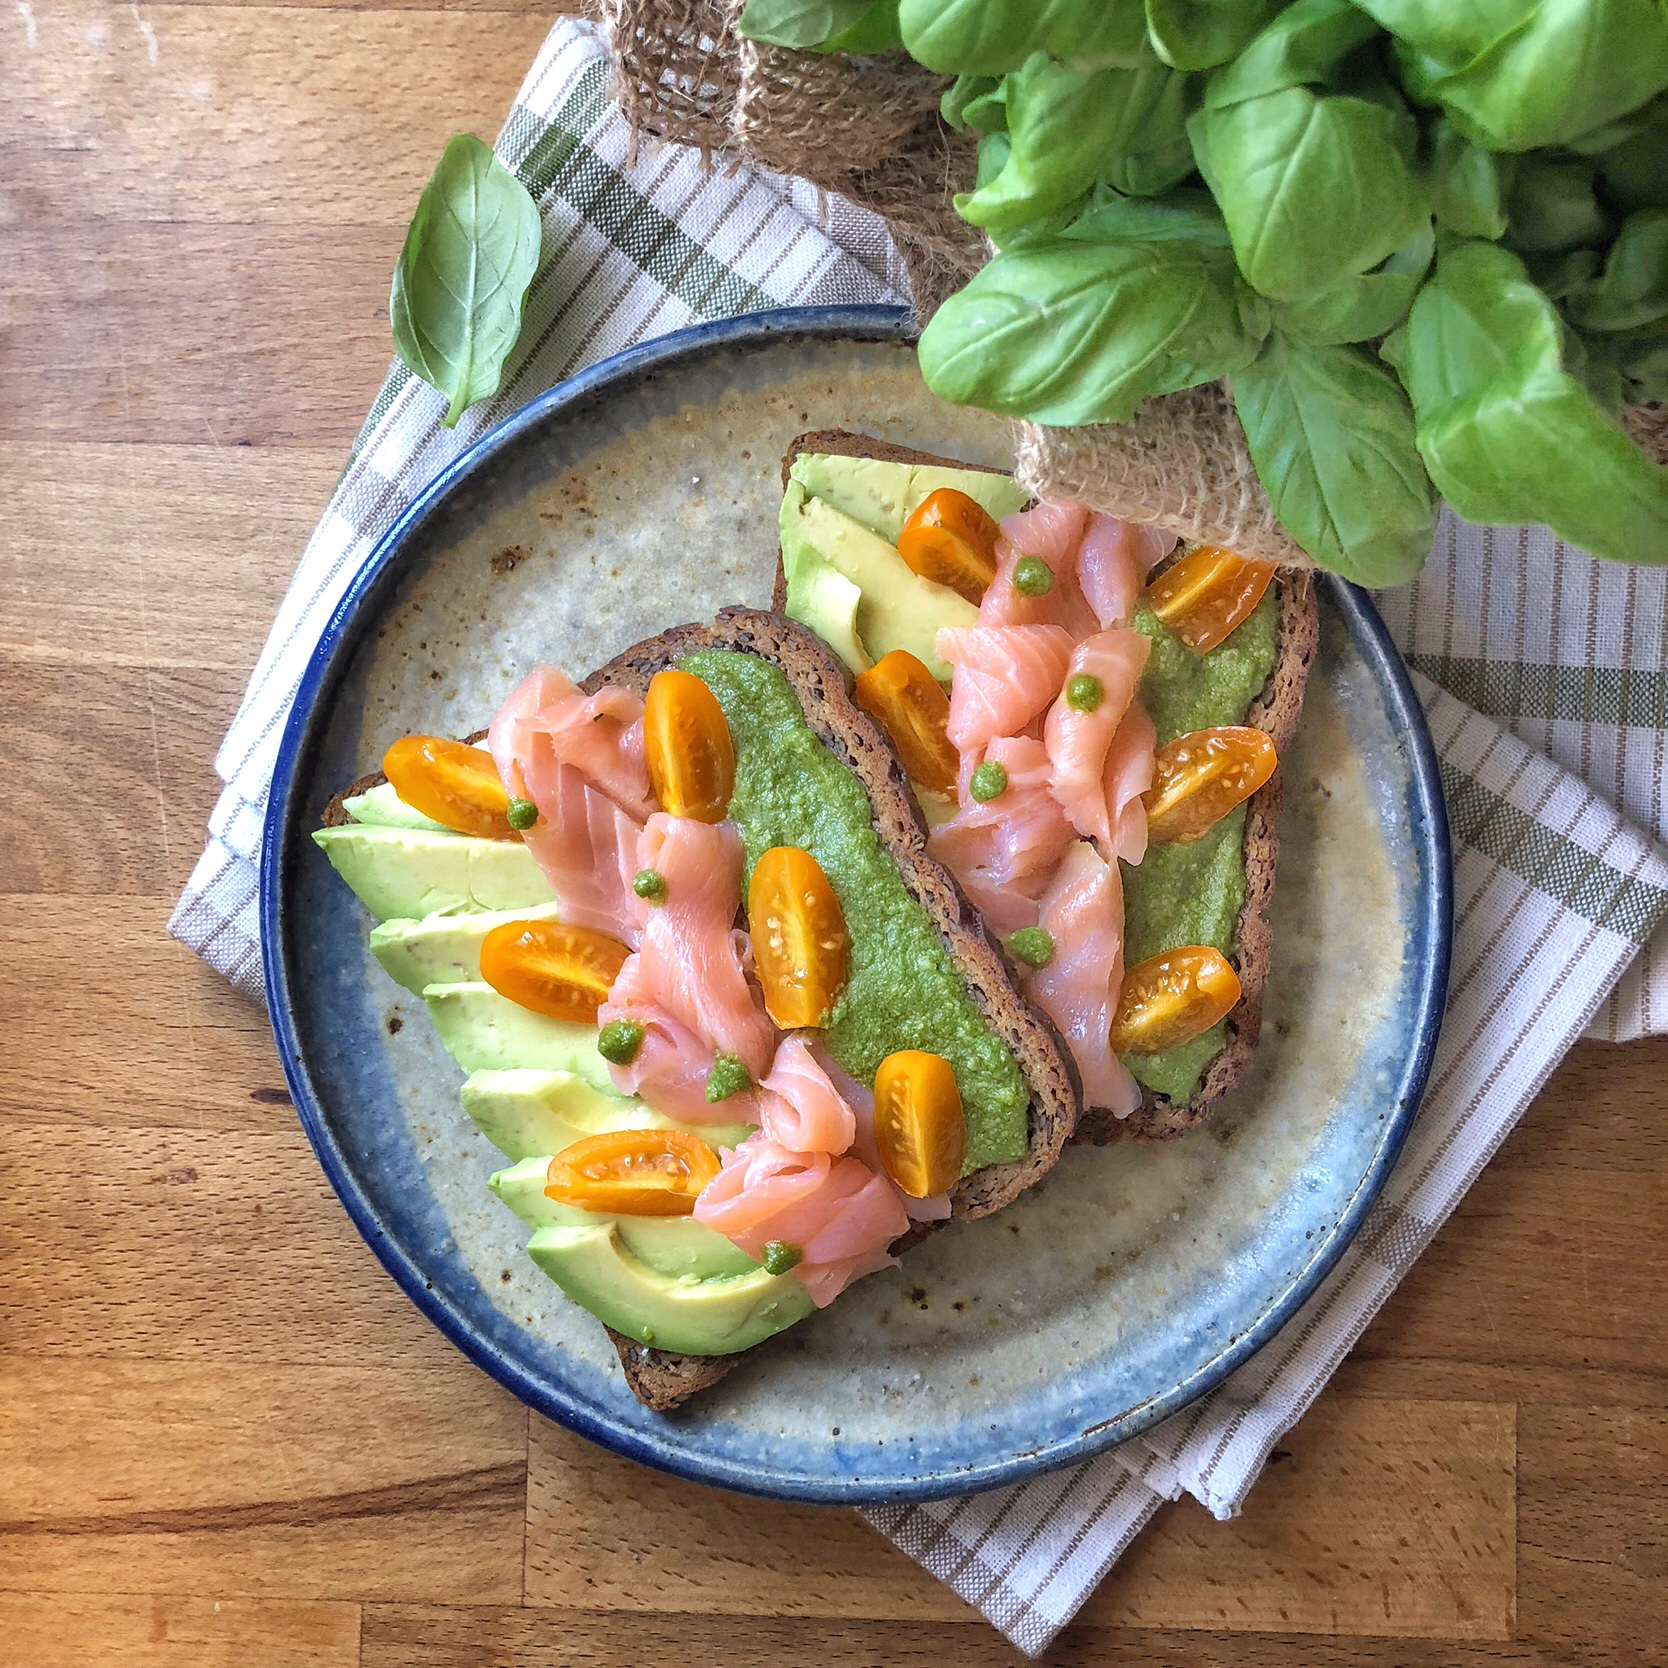 Avocado toast con salmone e pesto